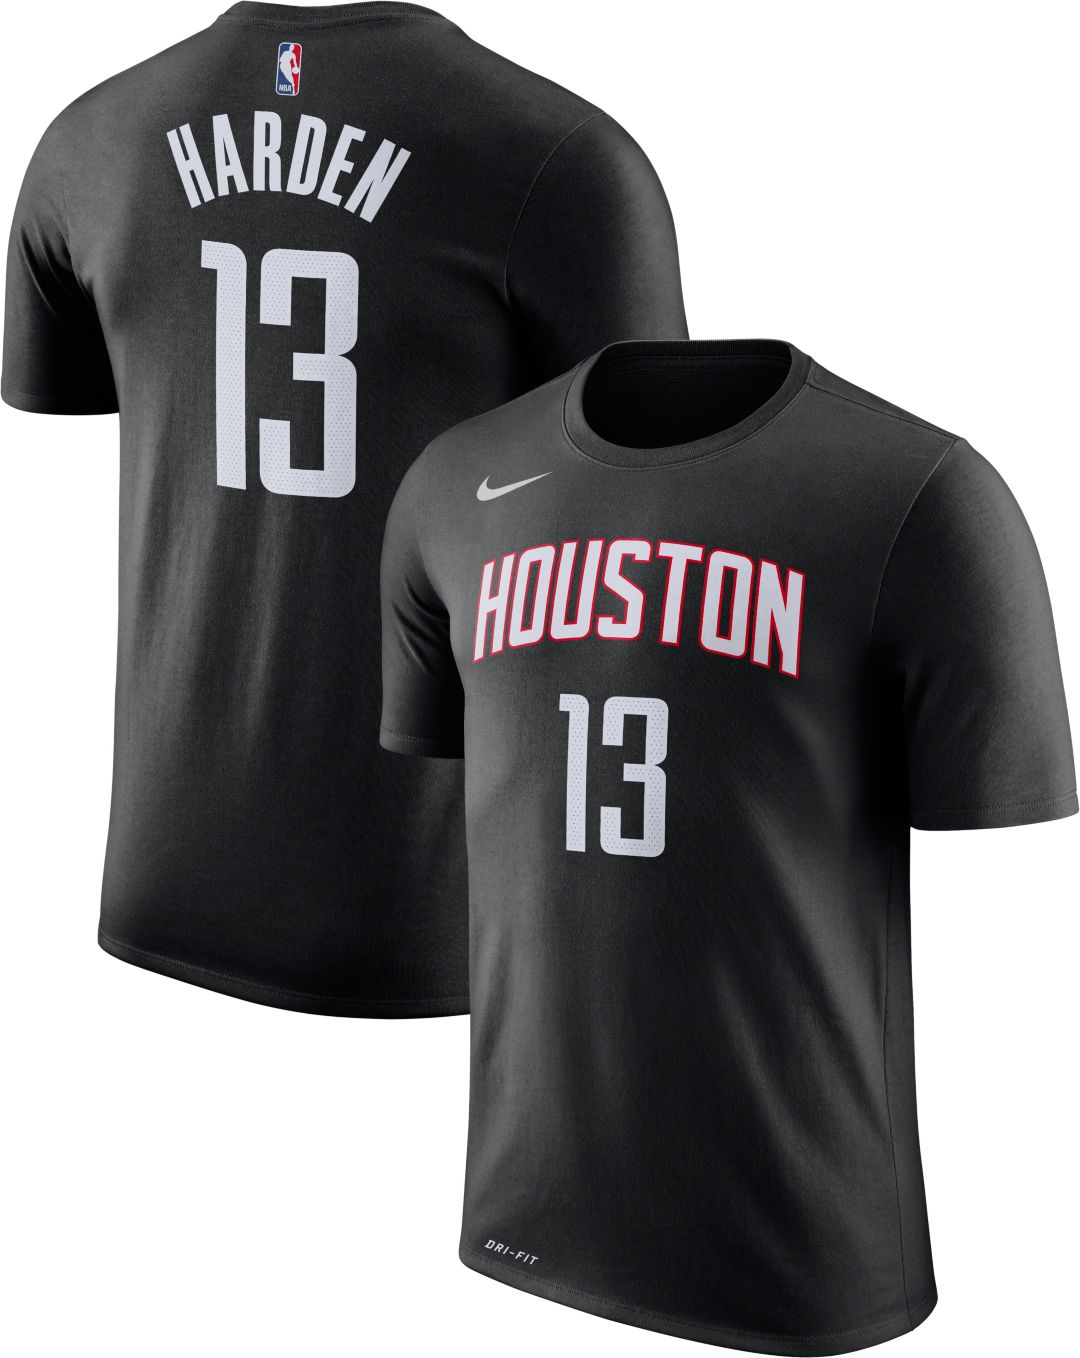 best sneakers 7f4a9 d54a1 Nike Men's Houston Rockets James Harden #13 Dri-FIT T-Shirt